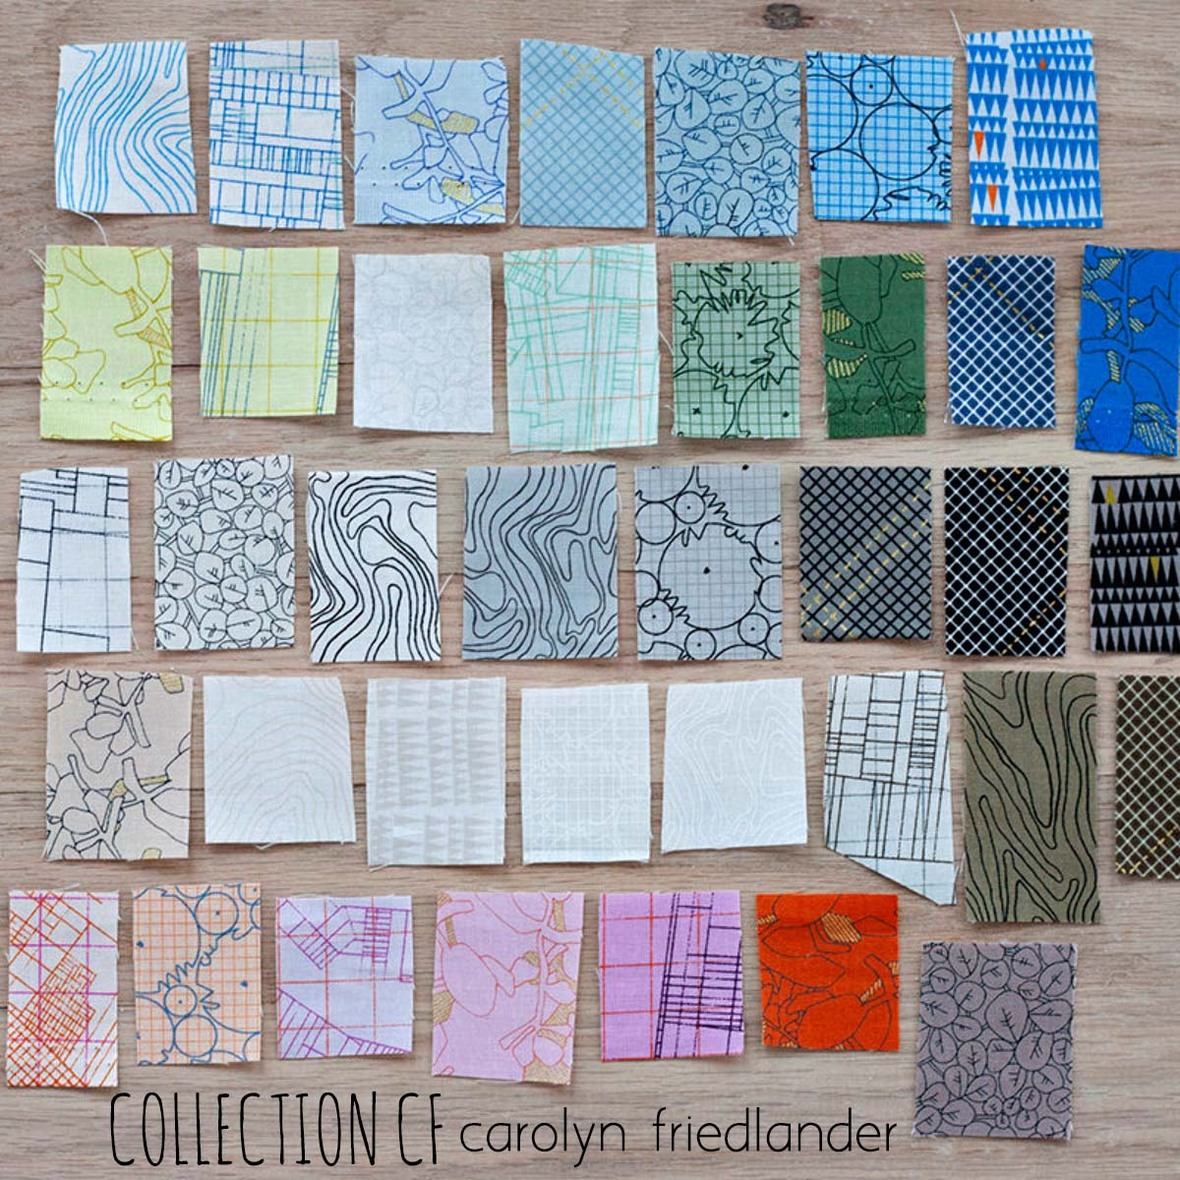 Carolyn Friedlander CF Fabric at Hawthorne Supply Co